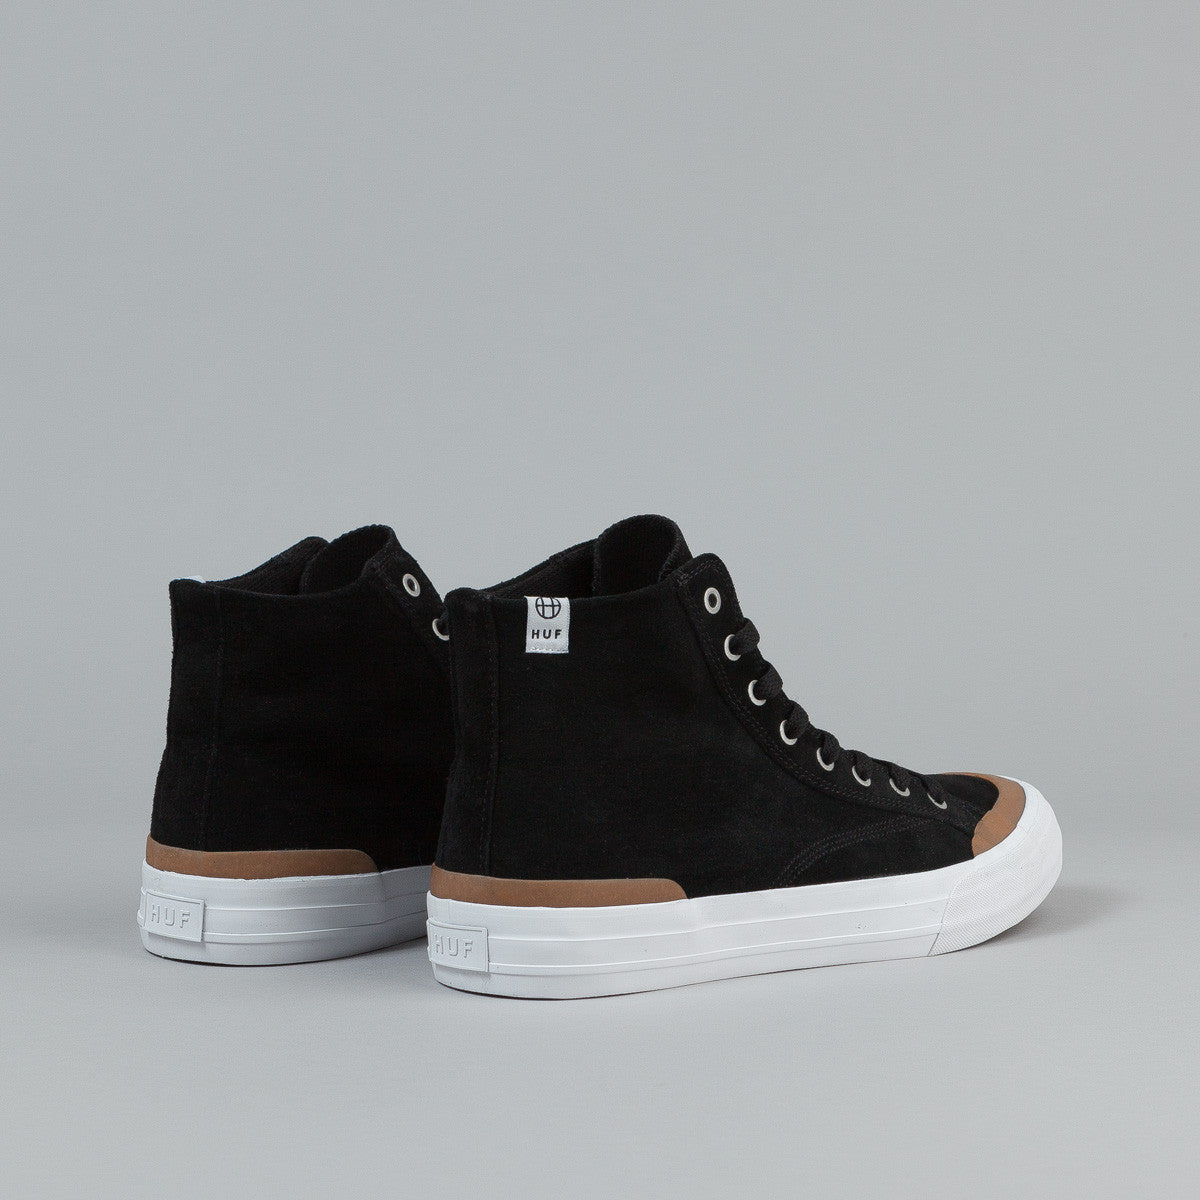 HUF Classic Hi Shoes - Black / Gum